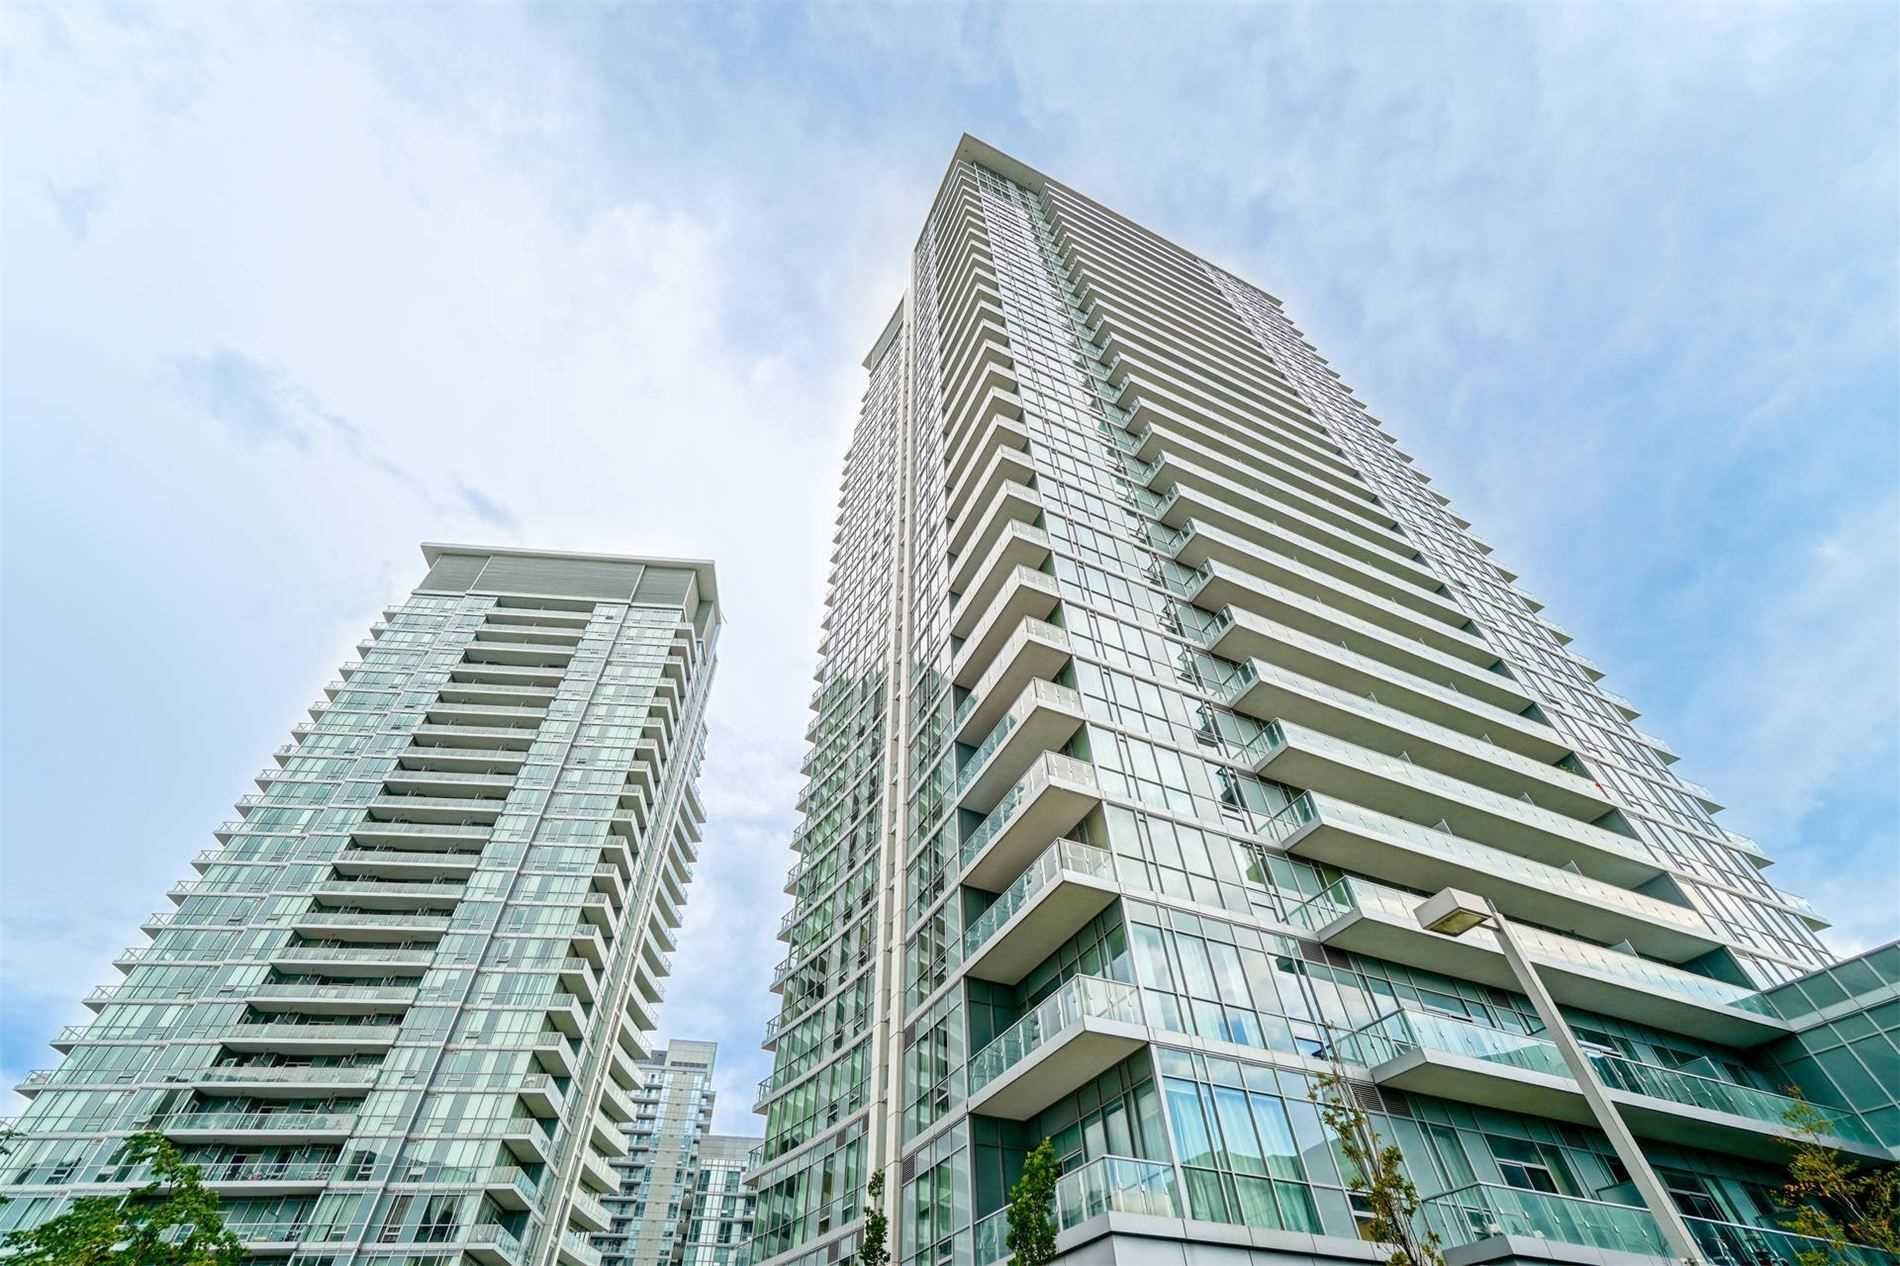 Main Photo: 1903 66 Forest Manor Road in Toronto: Henry Farm Condo for lease (Toronto C15)  : MLS®# C4880837